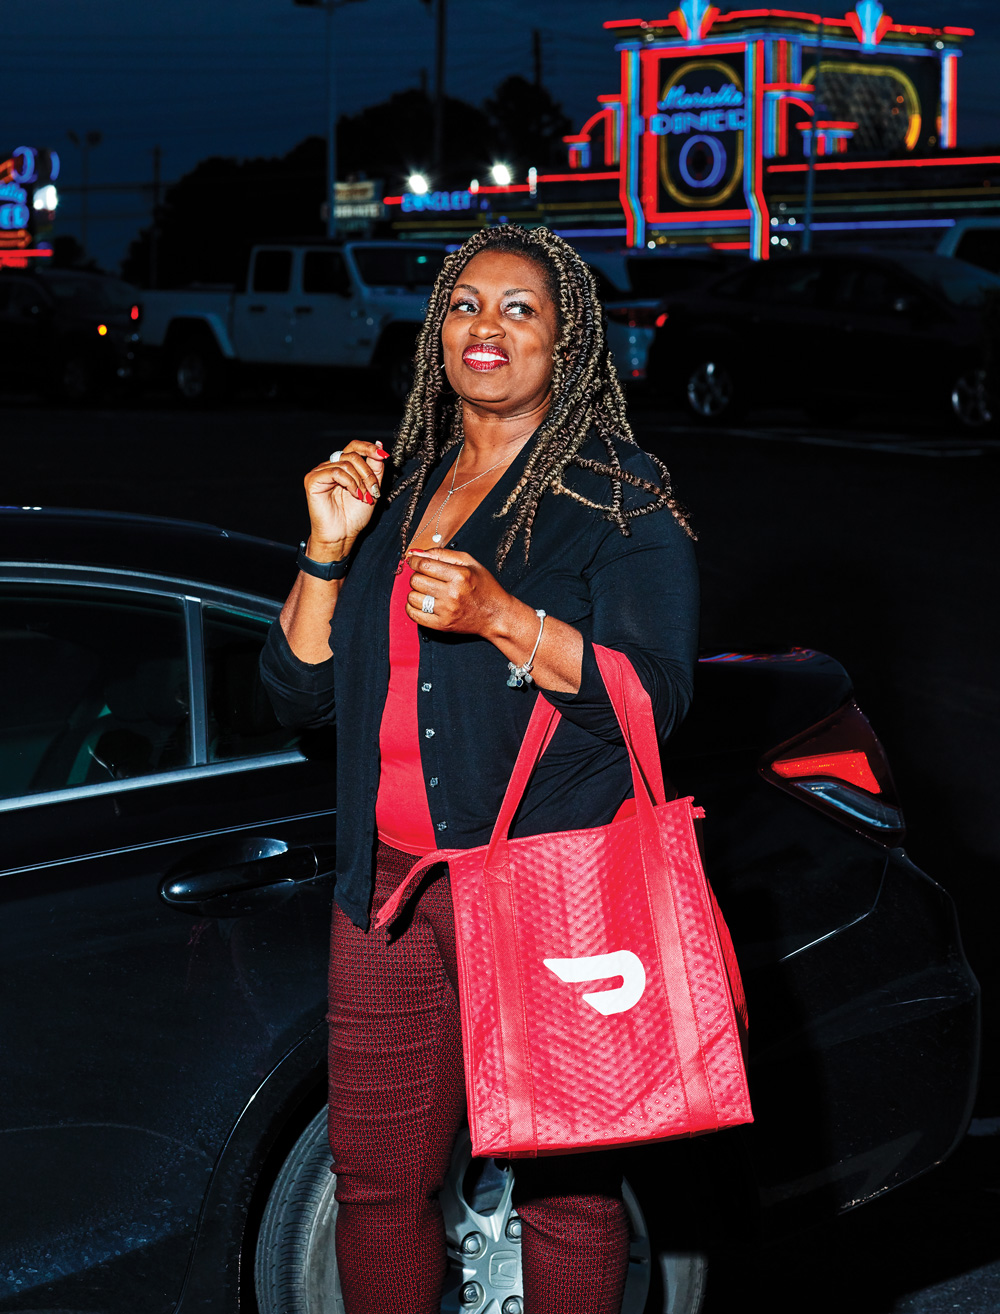 Kimberly Smith, who works with Postmates and DoorDash